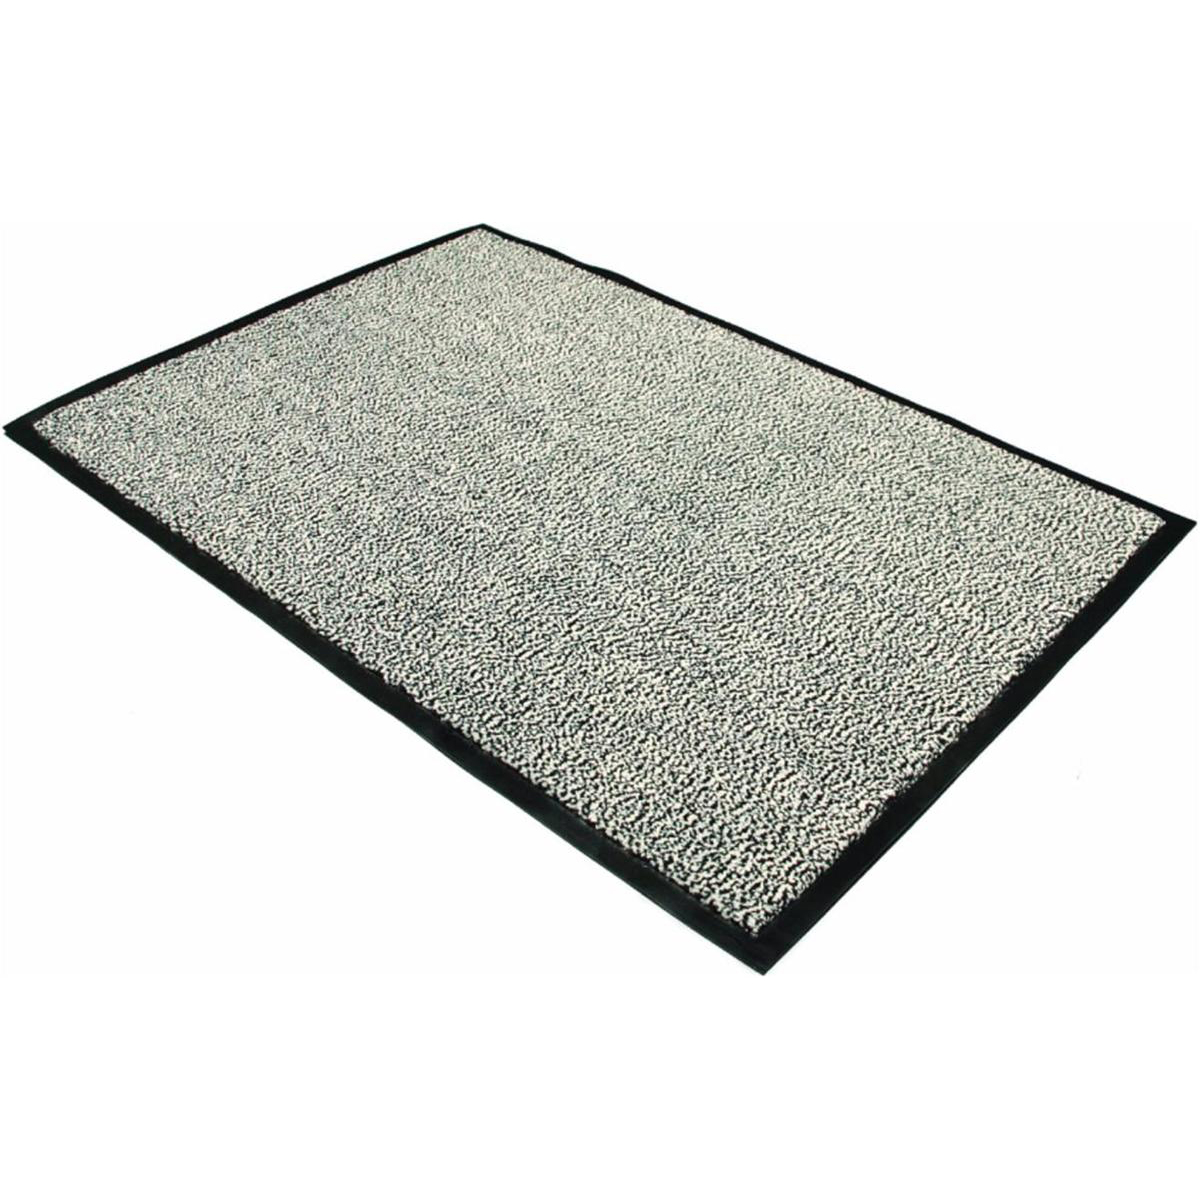 Door mats Doortex Advantagemat Door Mat Dust & Moisture Control Polypropylene 600x900mm Anthracite Ref FC46090DCBWV